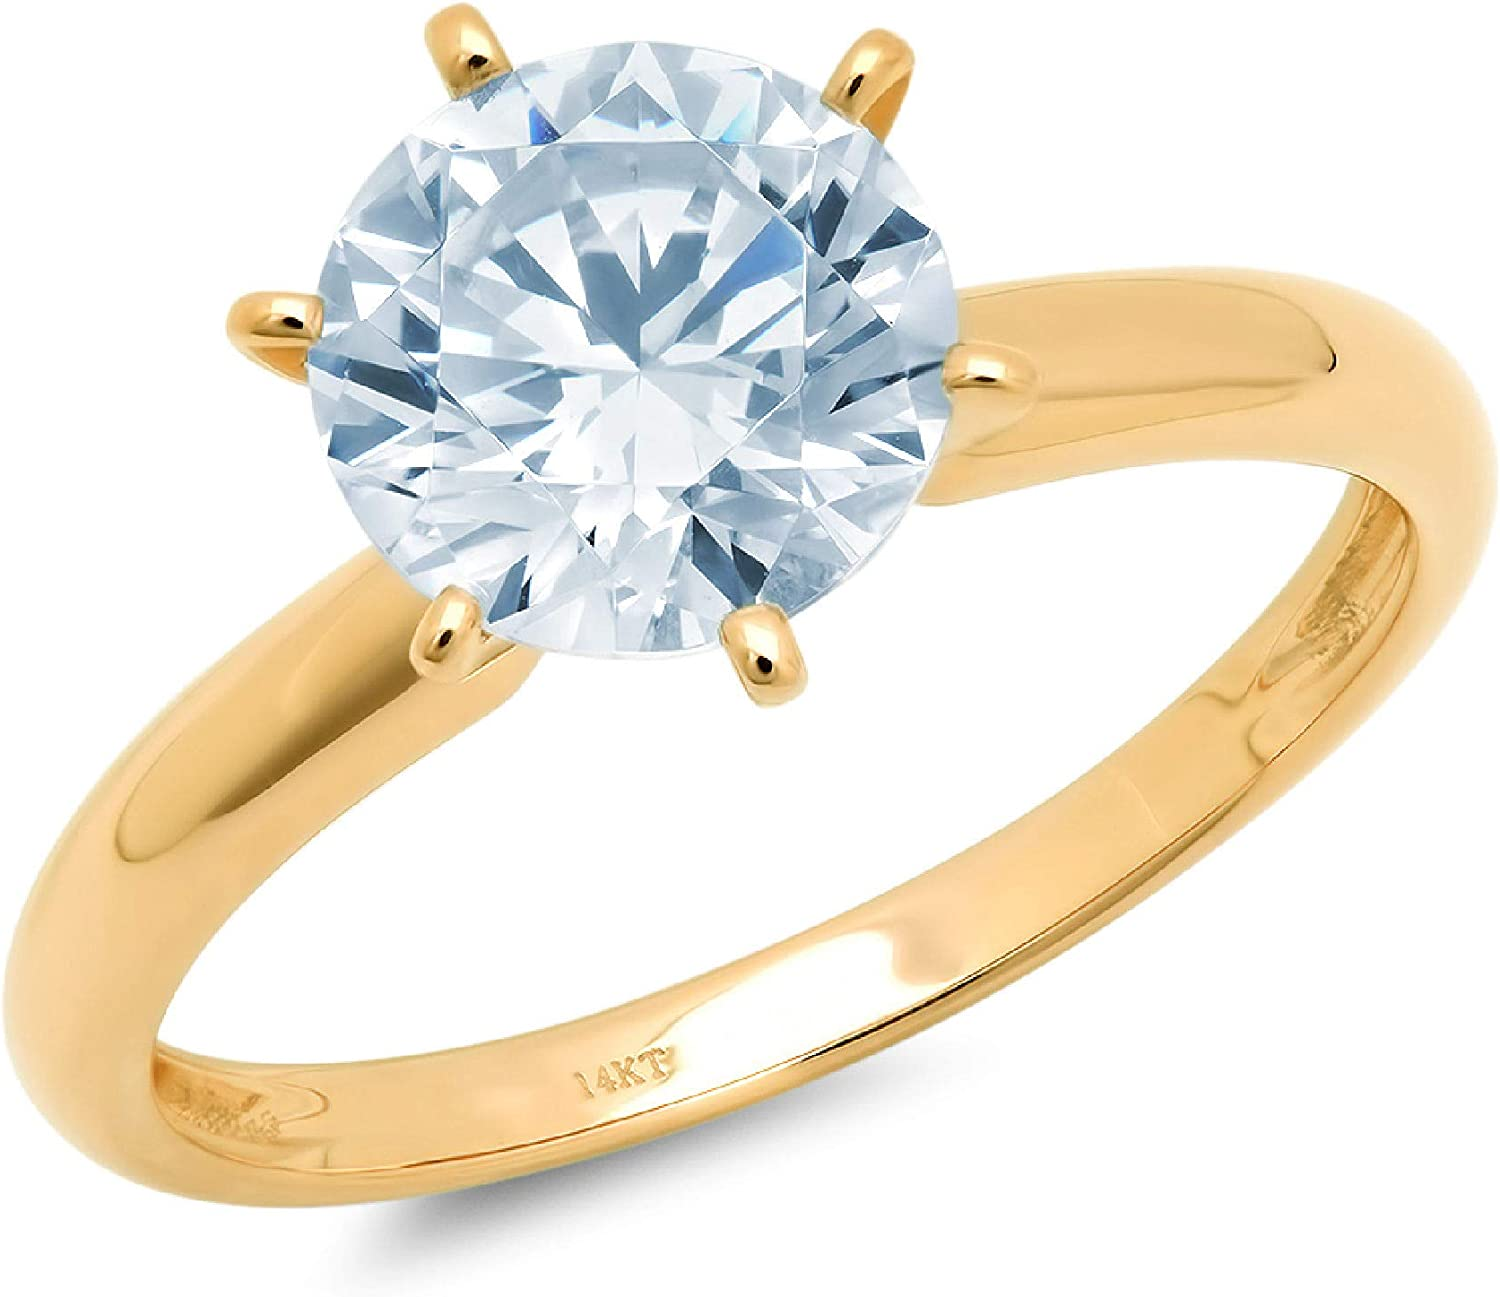 2.0 ct Brilliant Round Cut Solitaire Natural Swiss Blue Topaz Gem Stone Ideal VVS1 6-Prong Engagement Wedding Bridal Promise Anniversary Ring in Solid Real 14k yellow Gold for Women